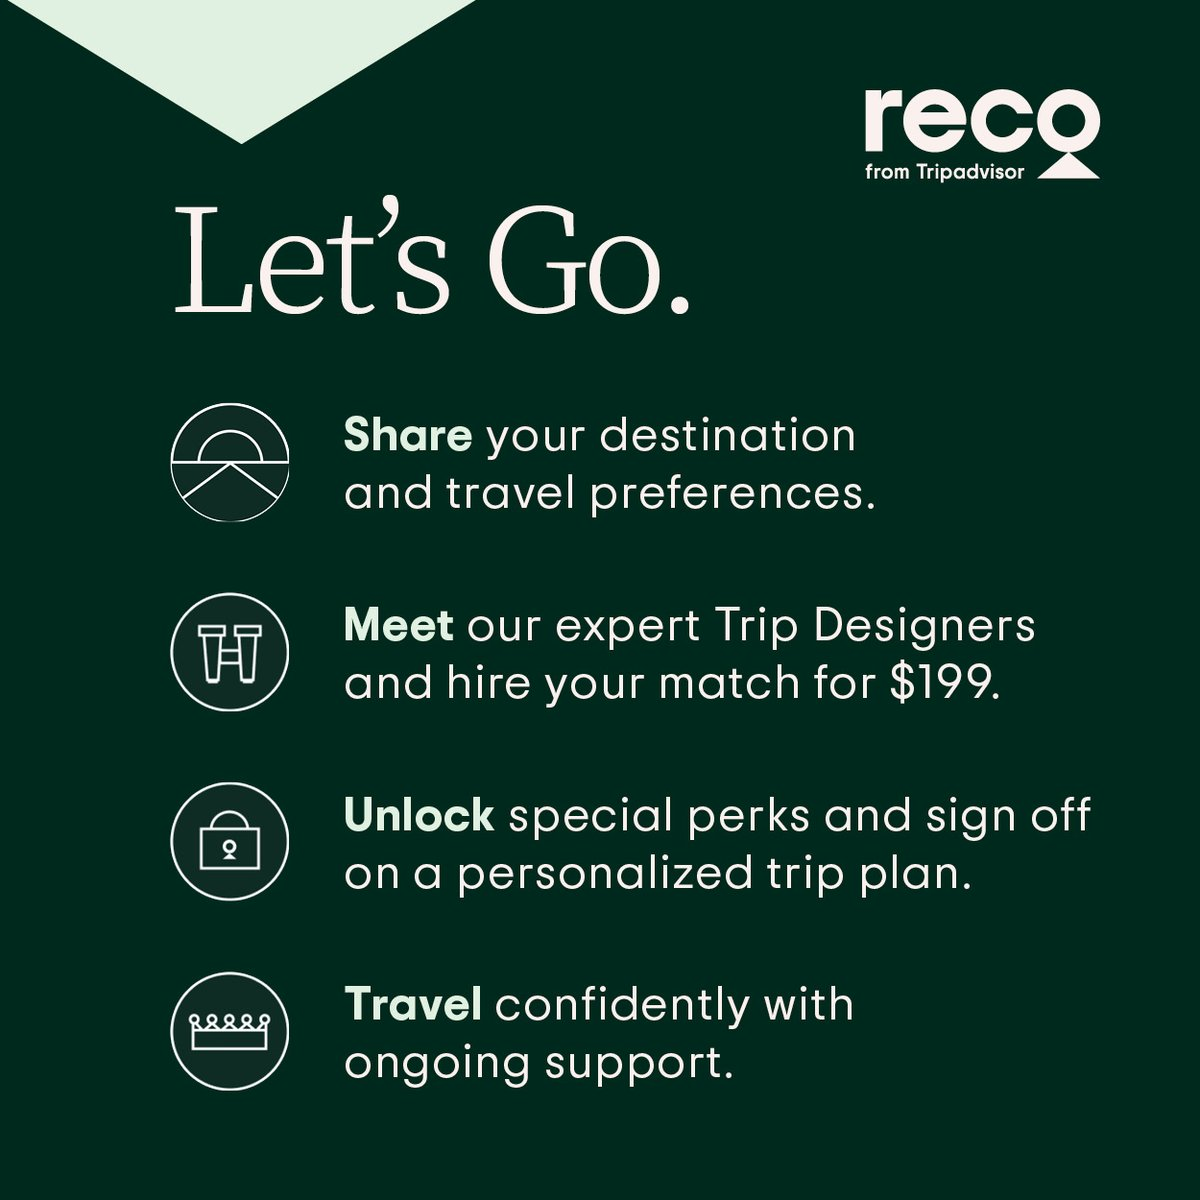 Here's how Trip Design works. Learn more about the Reco beta: https://t.co/igpD7HXzda https://t.co/Uxp4UojUVK